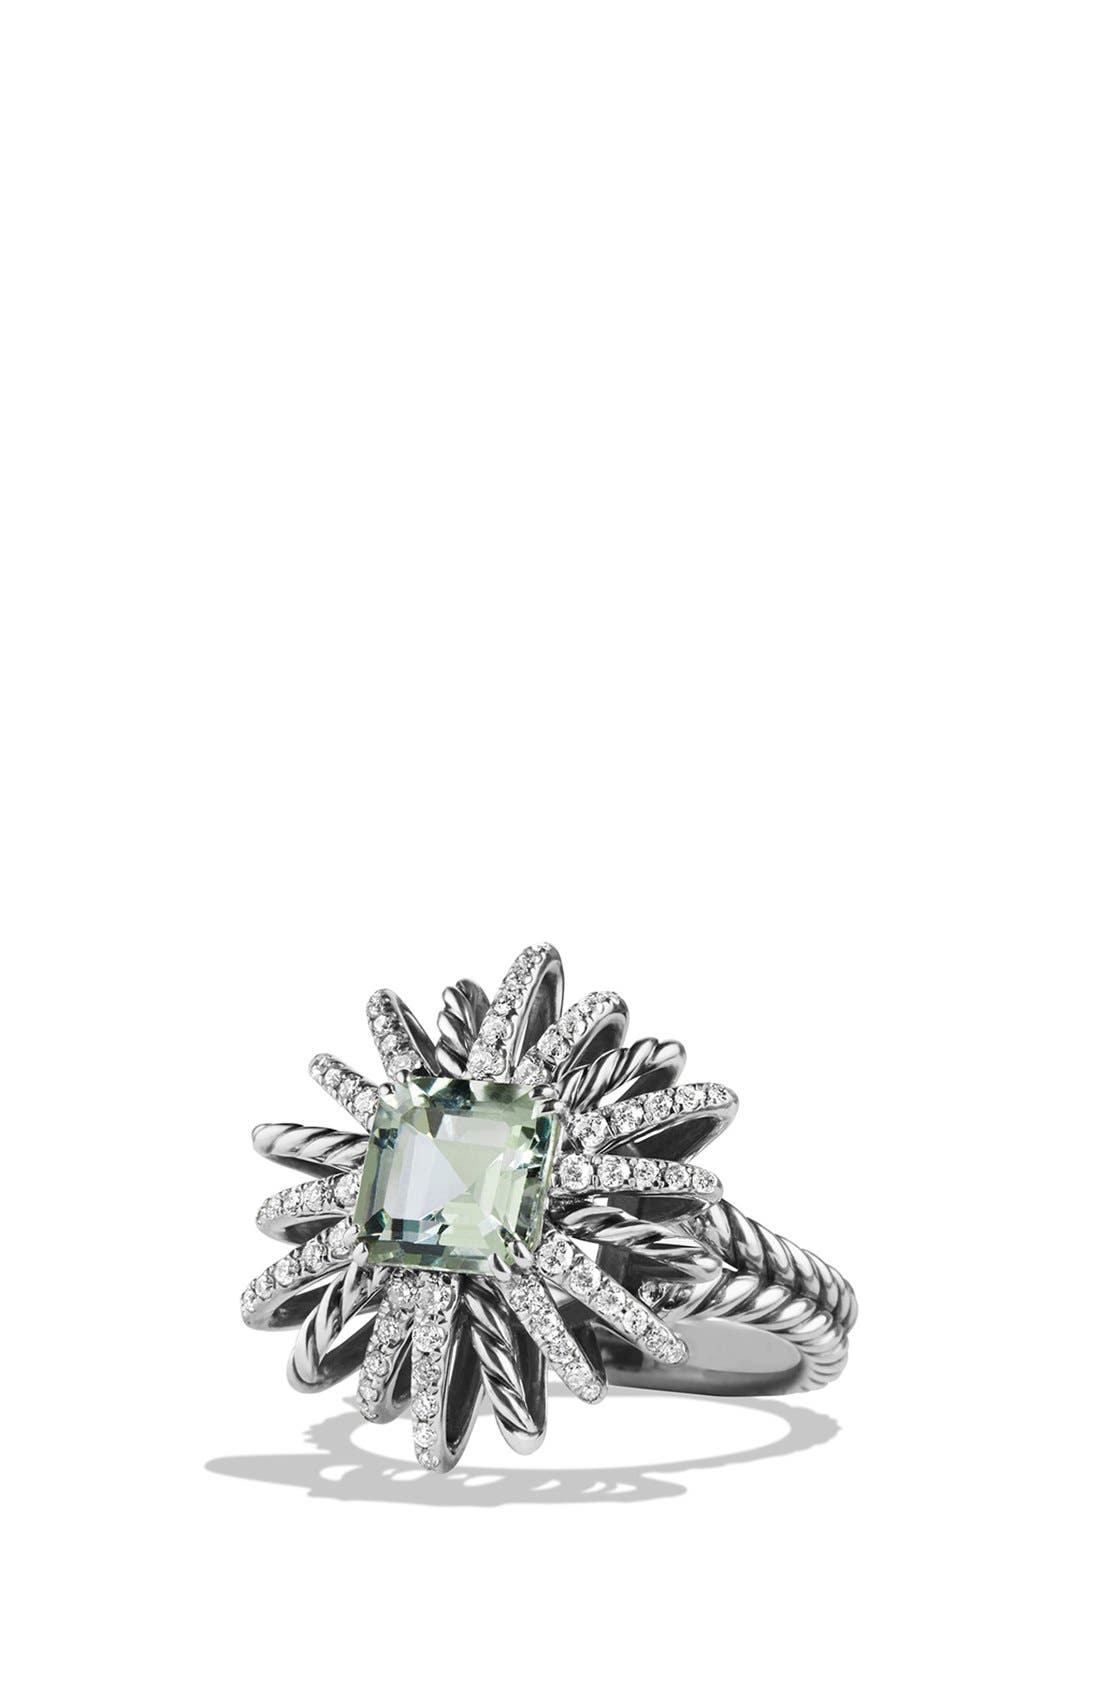 Alternate Image 1 Selected - David Yurman 'Starburst' Ring